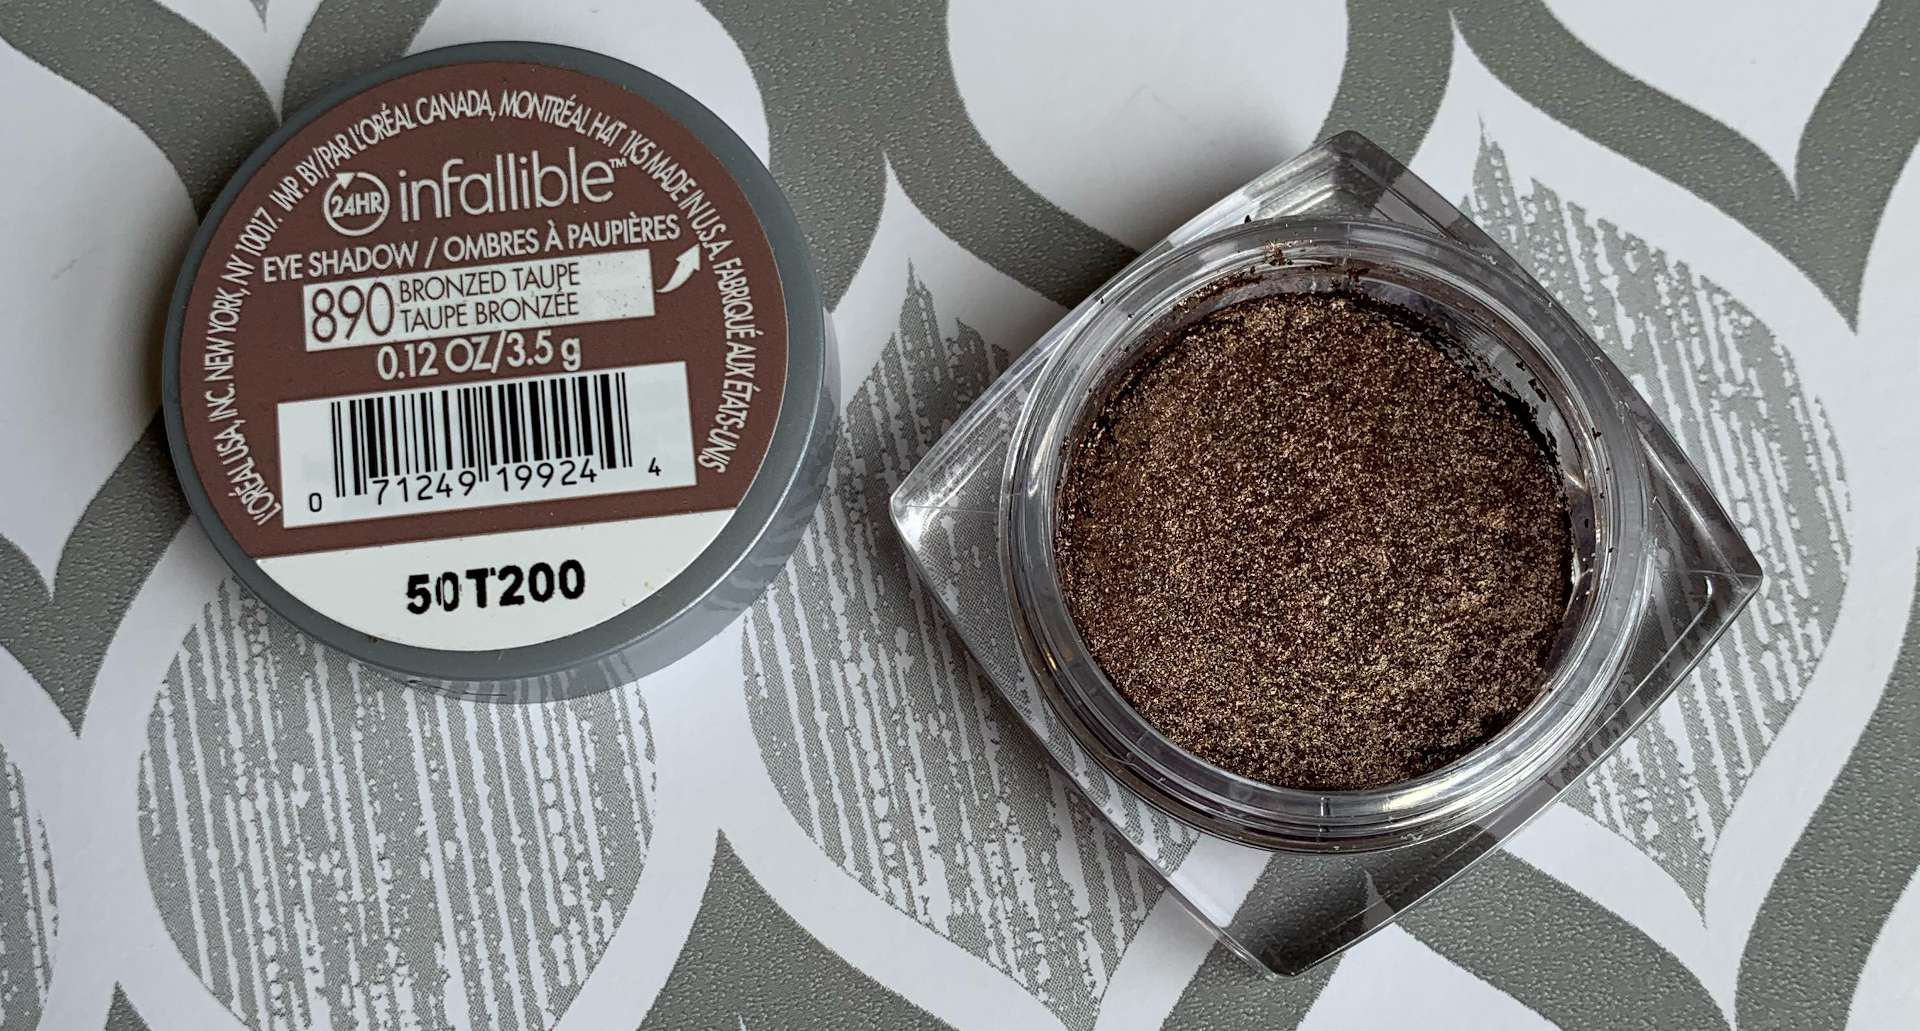 L'Oreal Infallible 24HR Eyeshadow 890 Bronzed Taupe Swatch